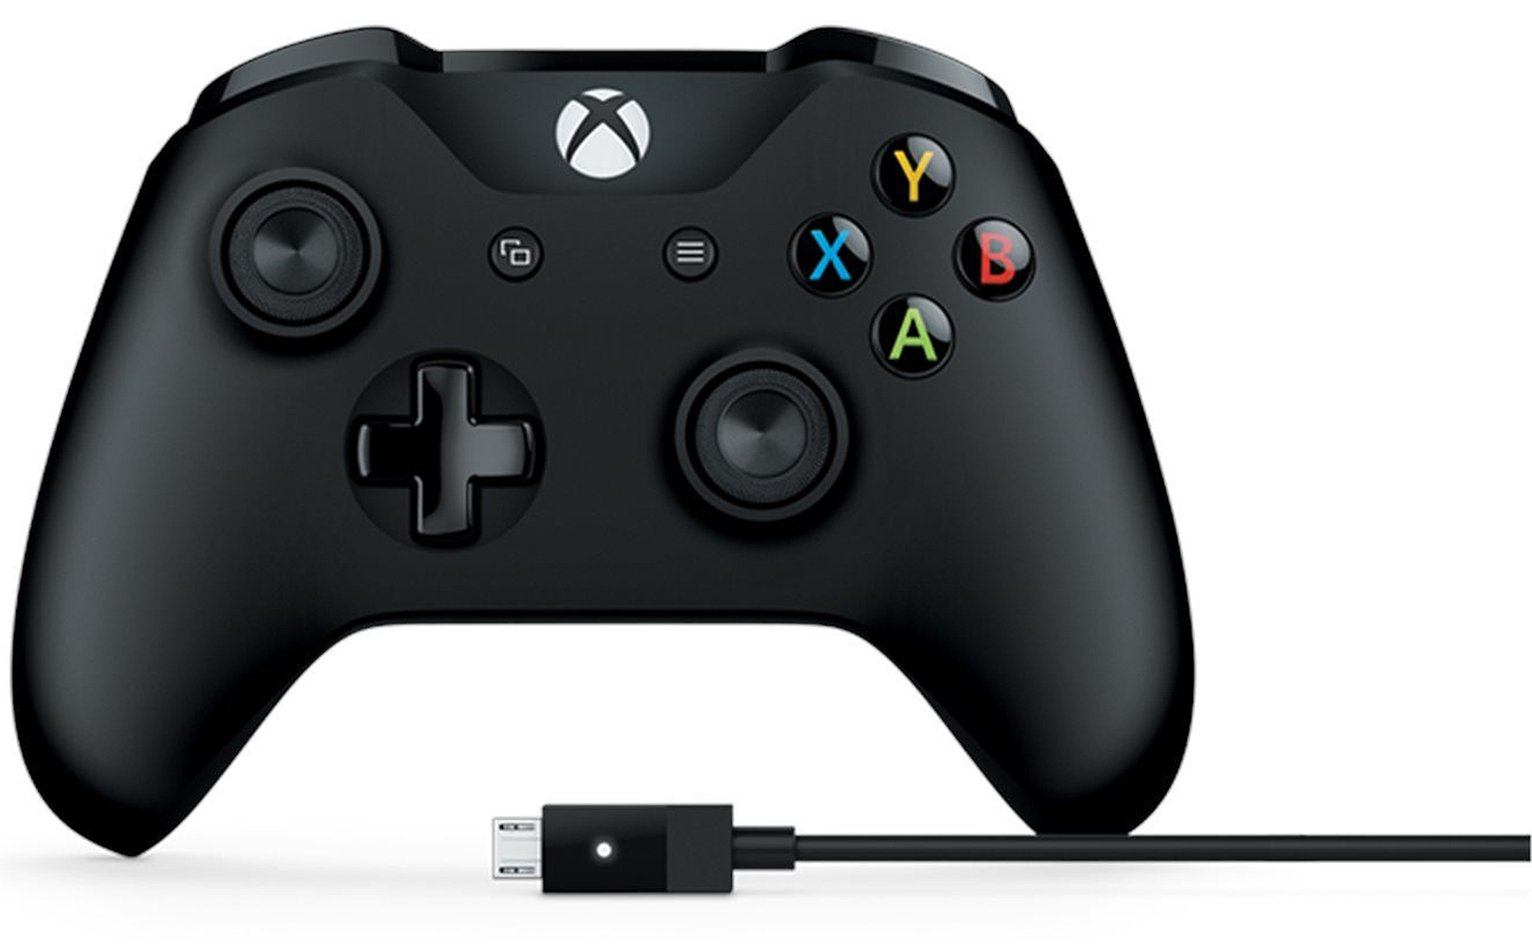 Xbox One Controller and Cable for Windows from Microsoft